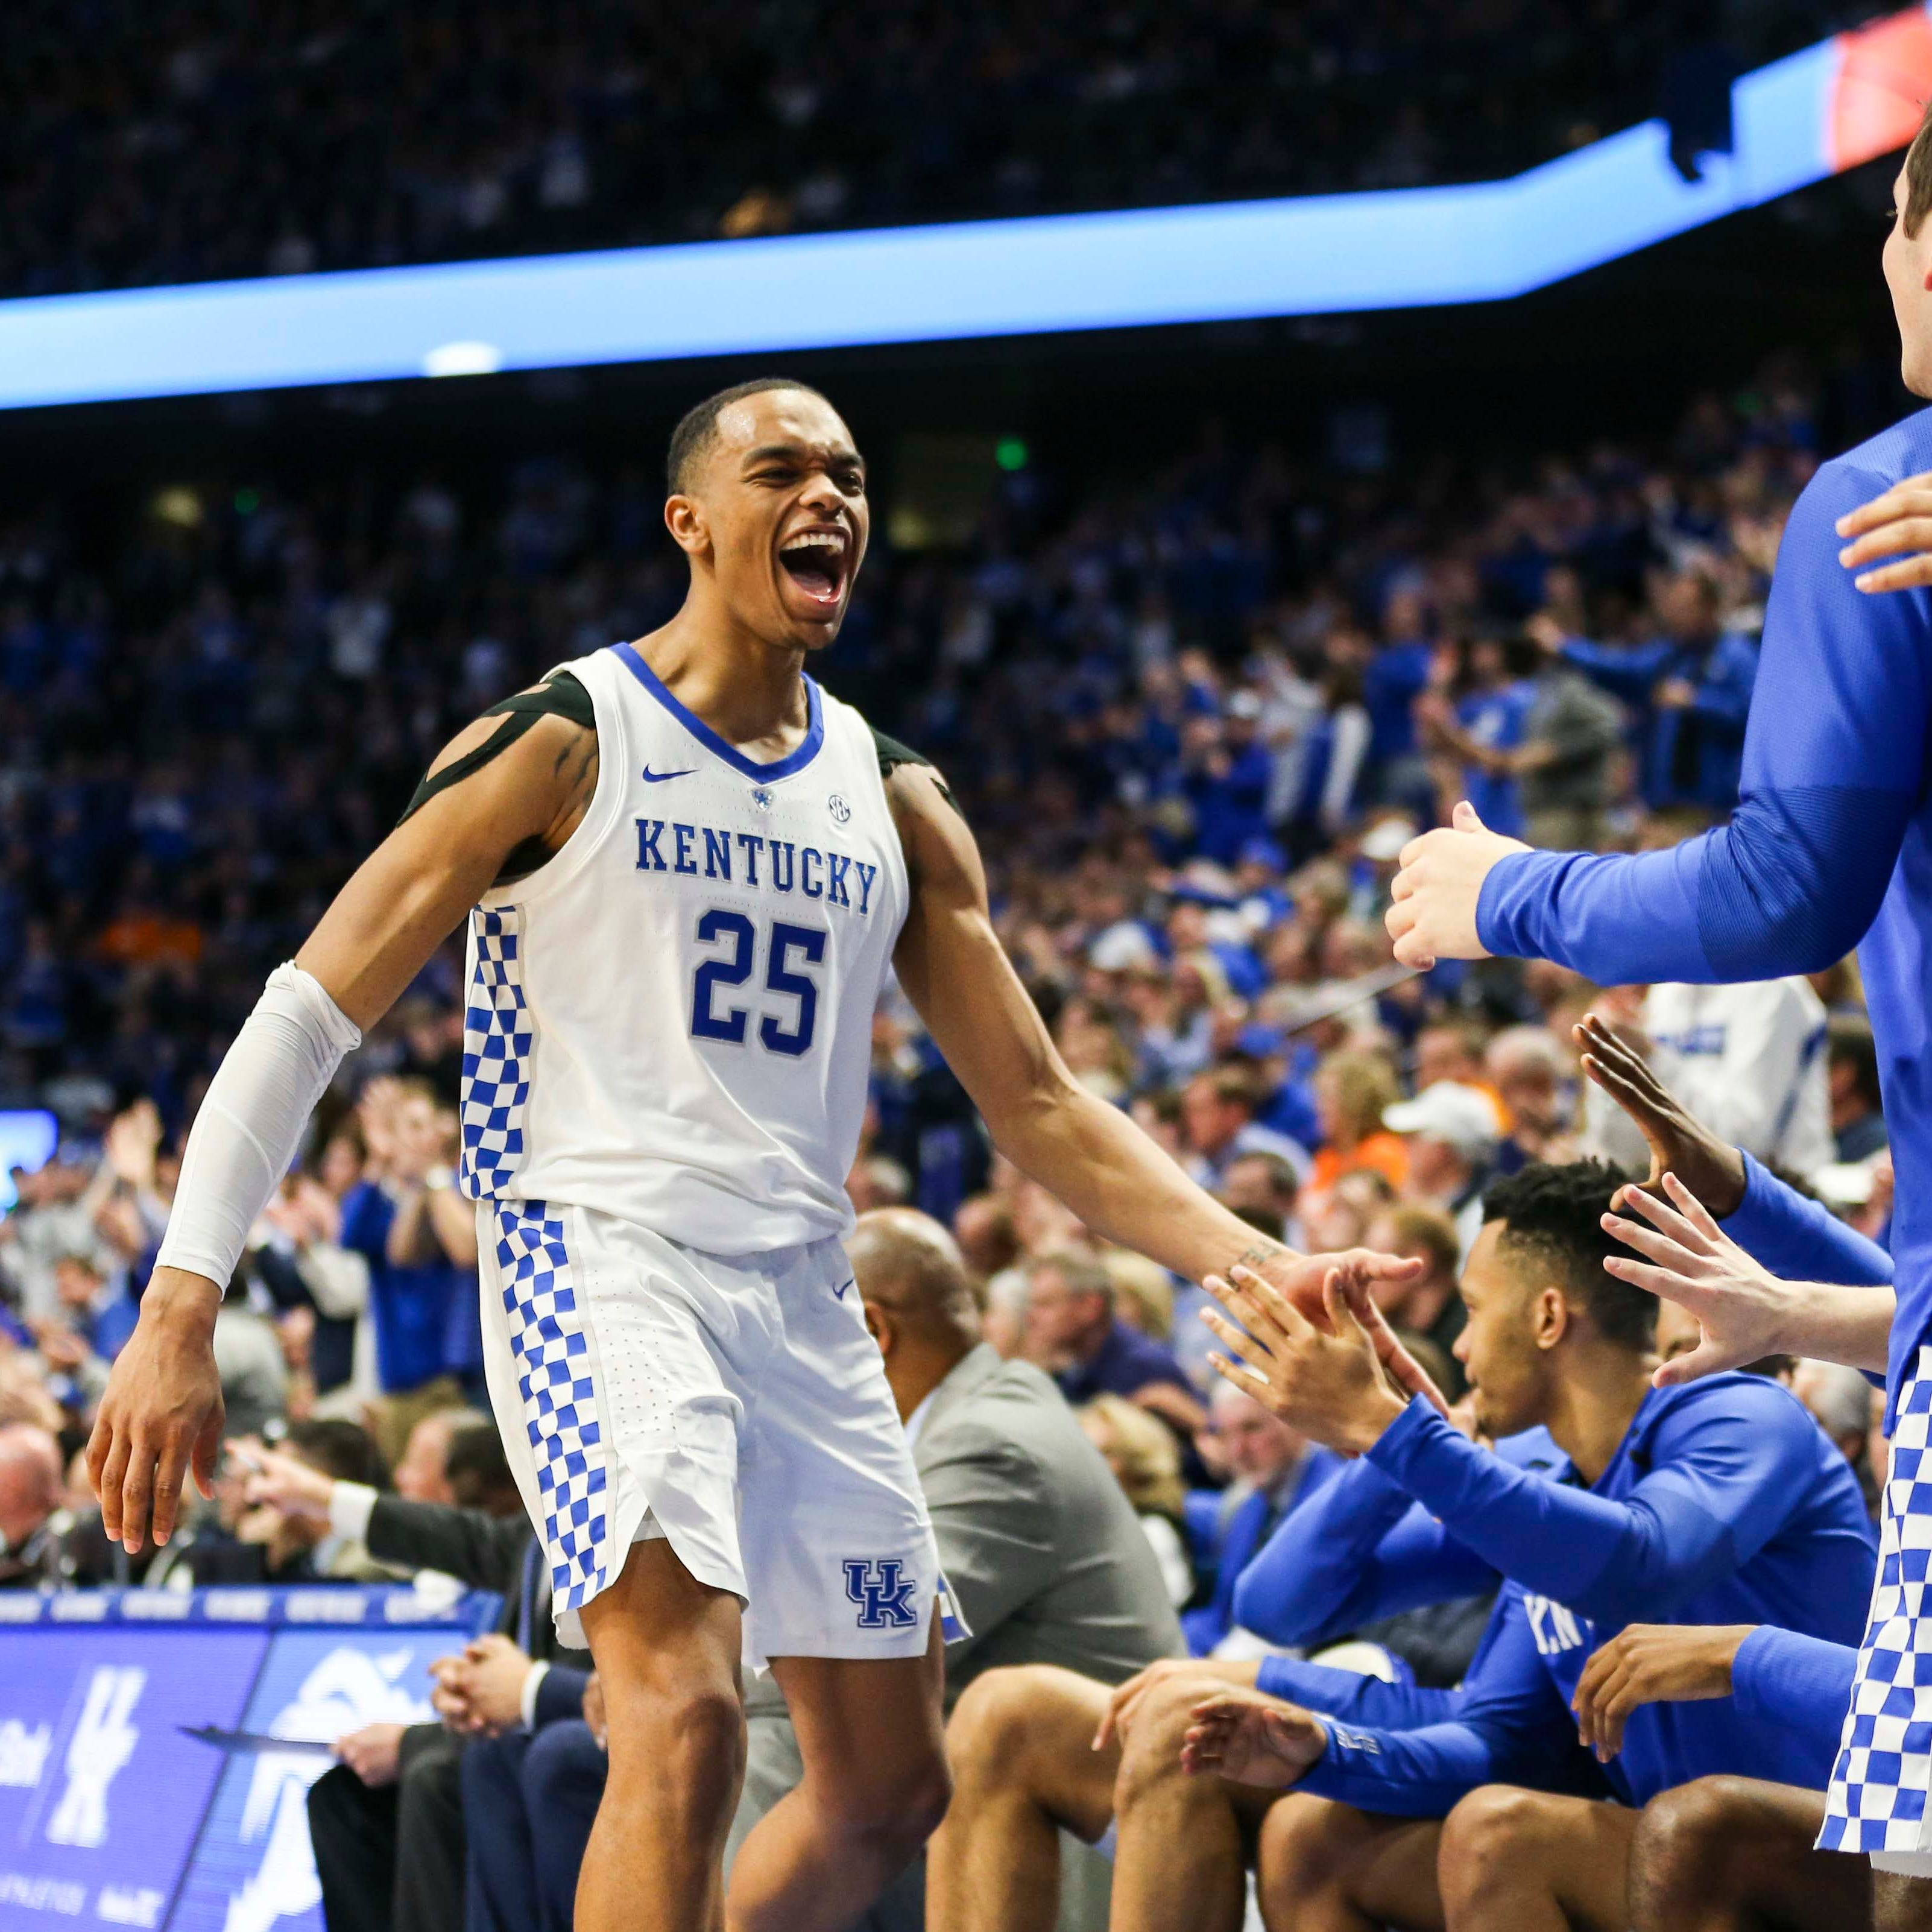 Kentucky scores No. 2 seed, will face Abilene Christian in NCAA Tournament